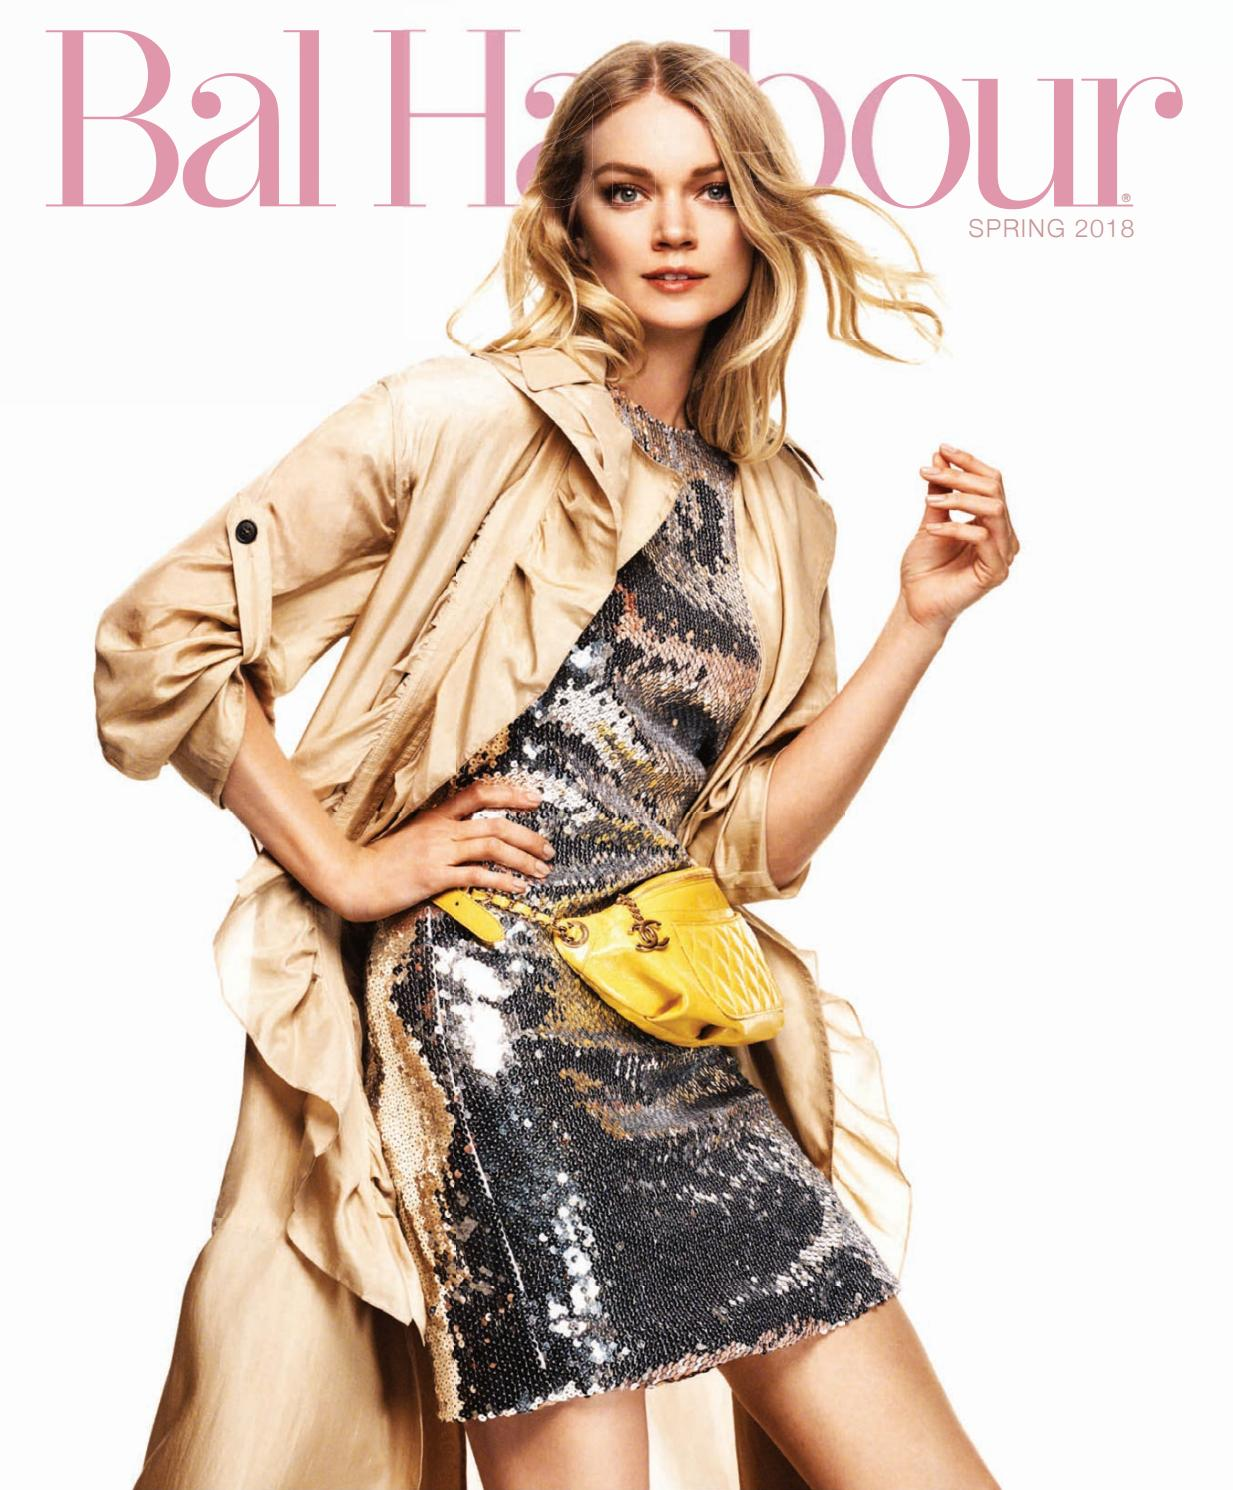 b84931e3b7a Bal Harbour Magazine - Spring 2018 by Bal Harbour Shops - issuu